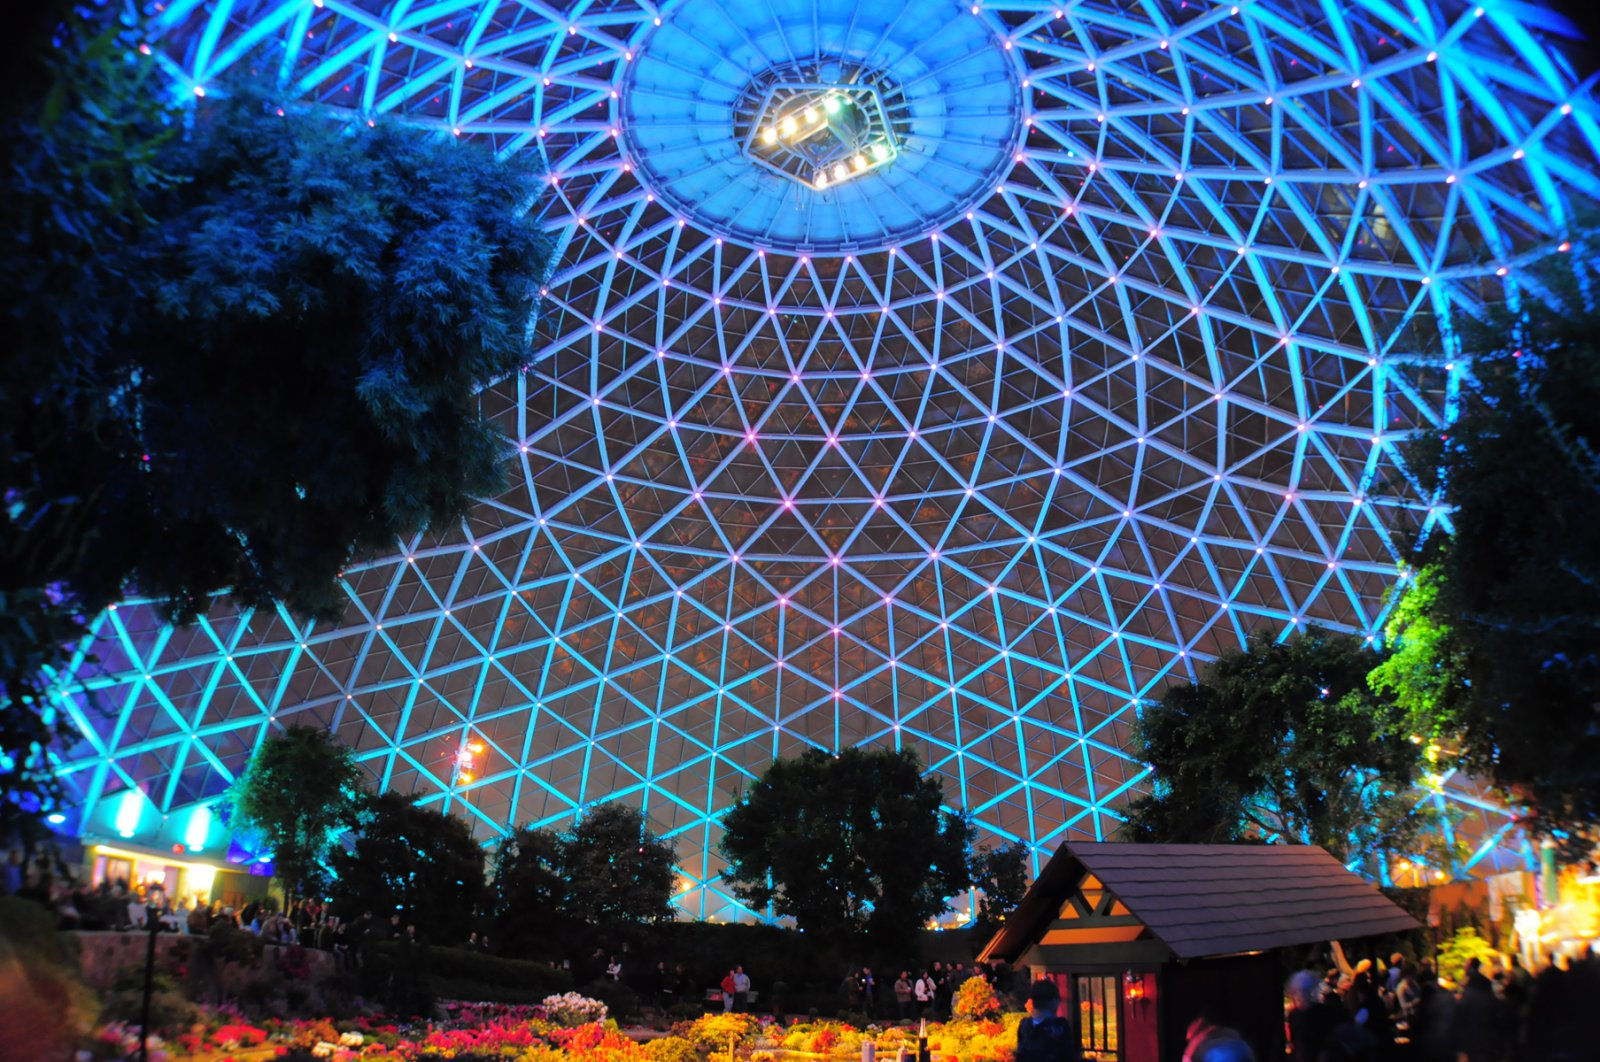 Light show at The Domes